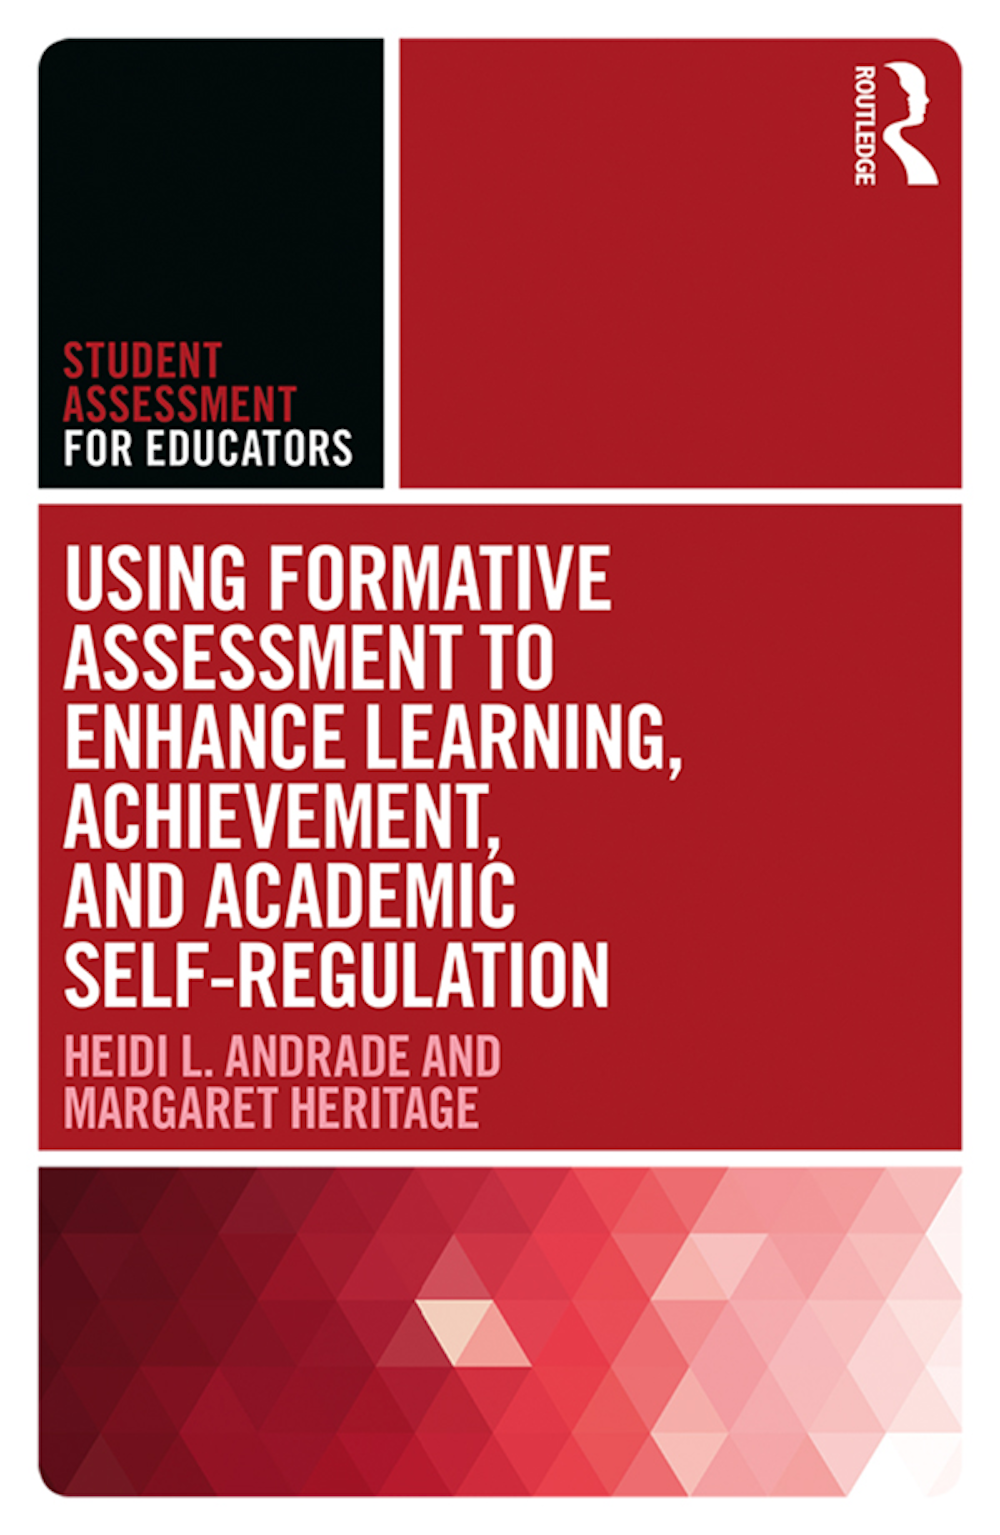 formative assessment to enhance learning and achievement